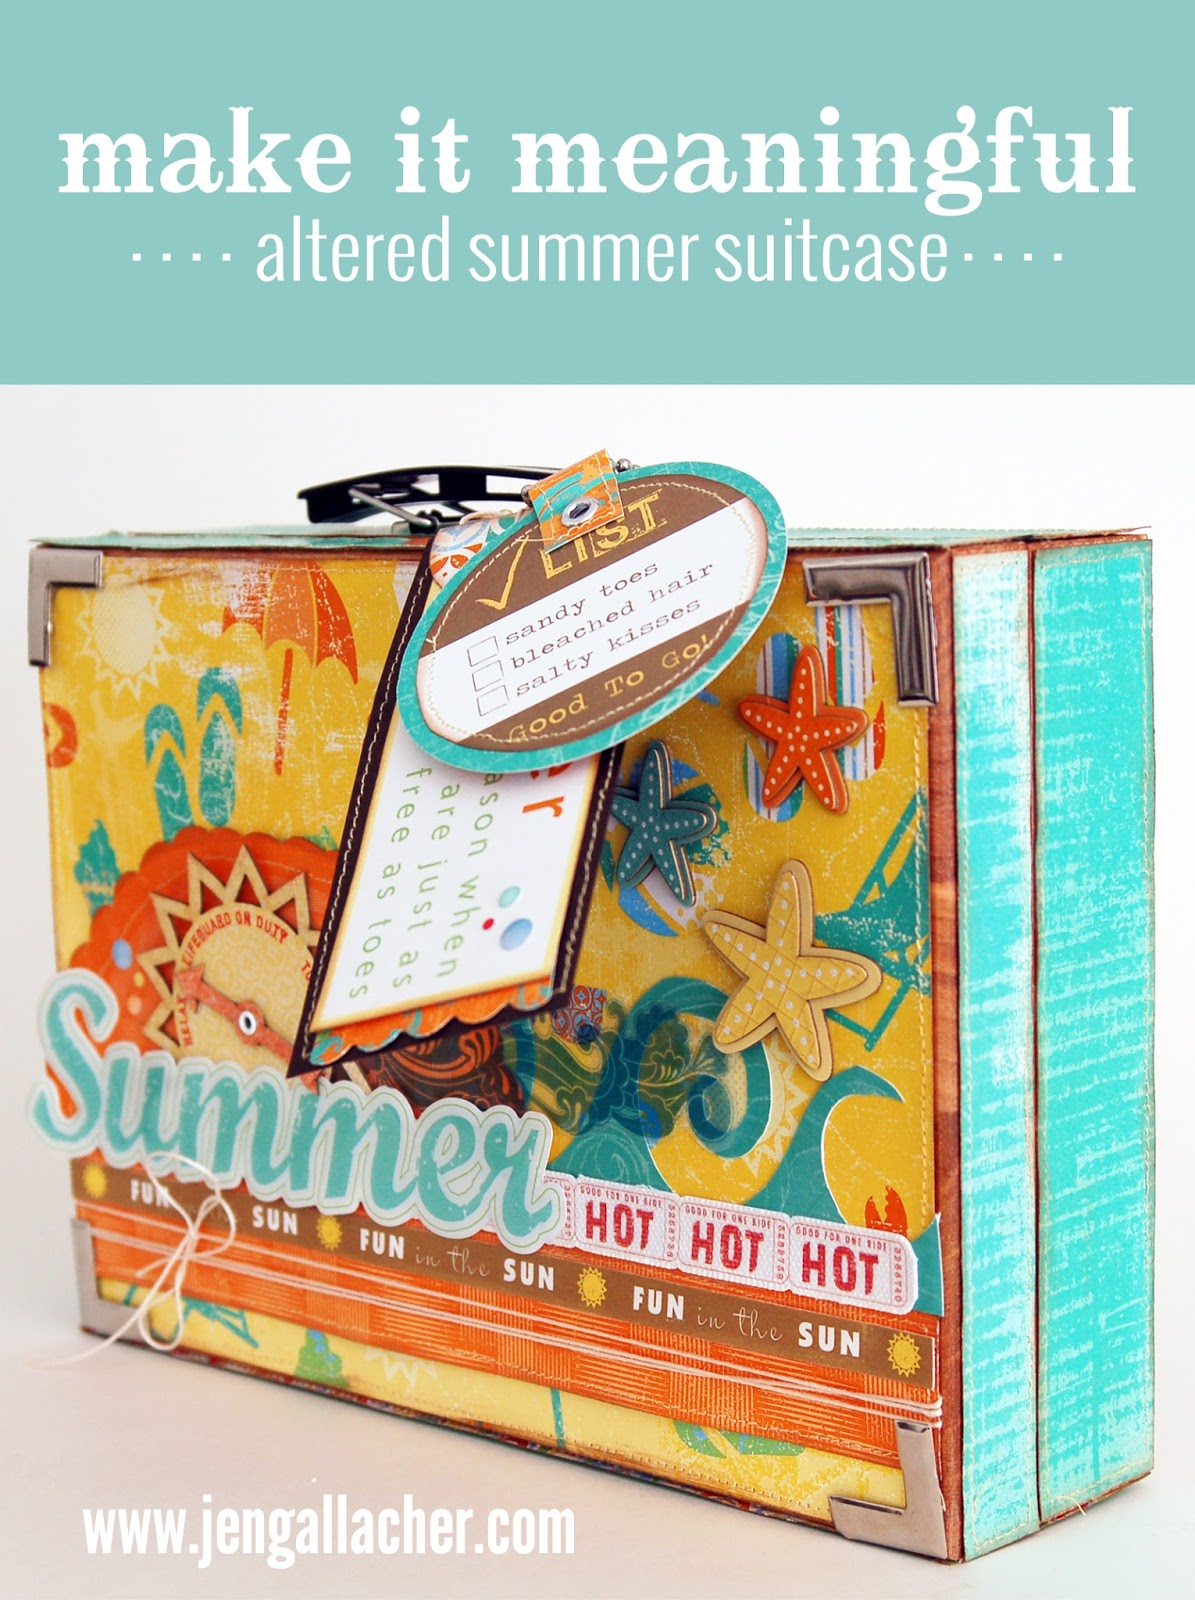 http://1.bp.blogspot.com/-w96oO85s6CA/VRGj7OYKZjI/AAAAAAAAUTc/8VHgW3LrDzA/s1600/Altered-Summer-Suitcase-by-Jen-Gallacher.jpg